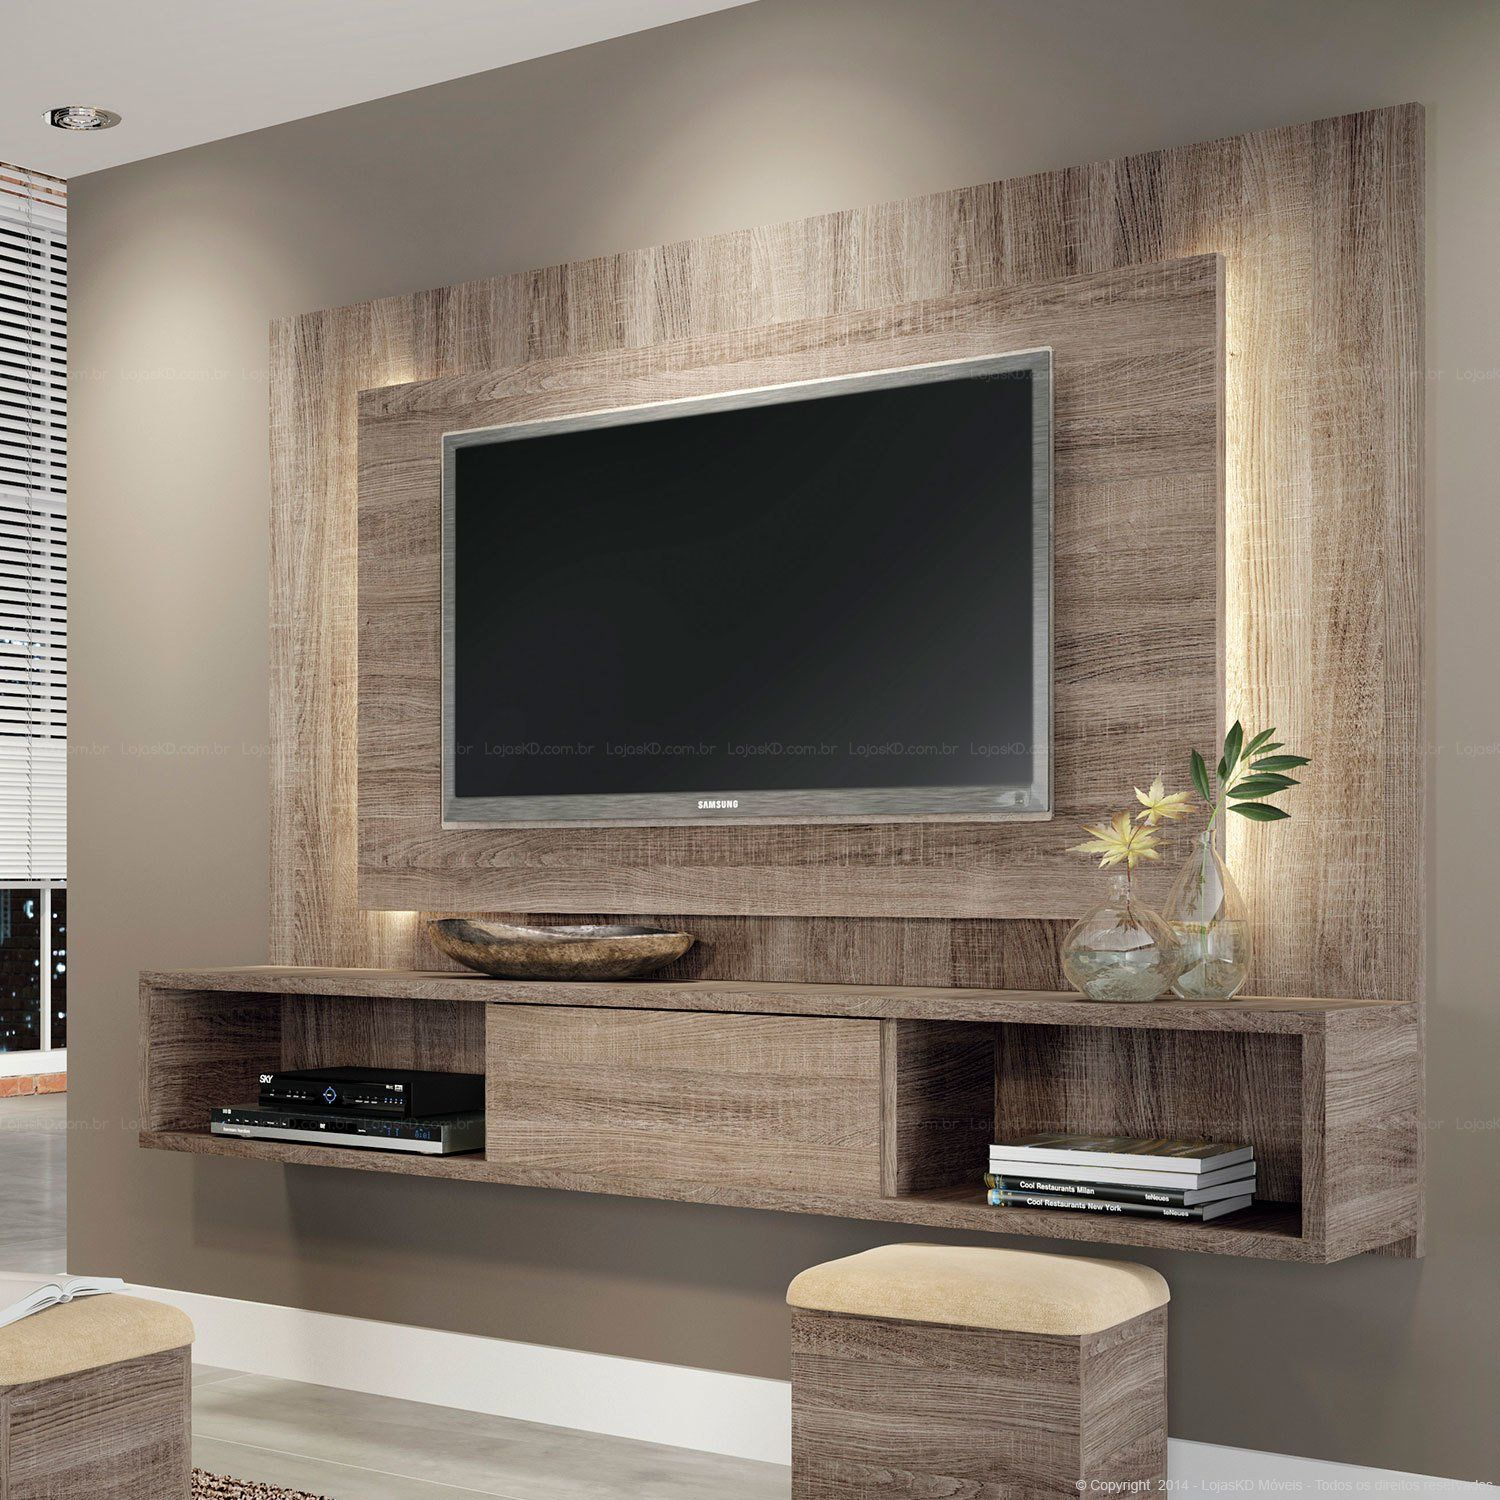 Tv On The Wall Ideas 40 Tv Wall Decor Ideas  Apartments Tv Wall Decor And Bedrooms